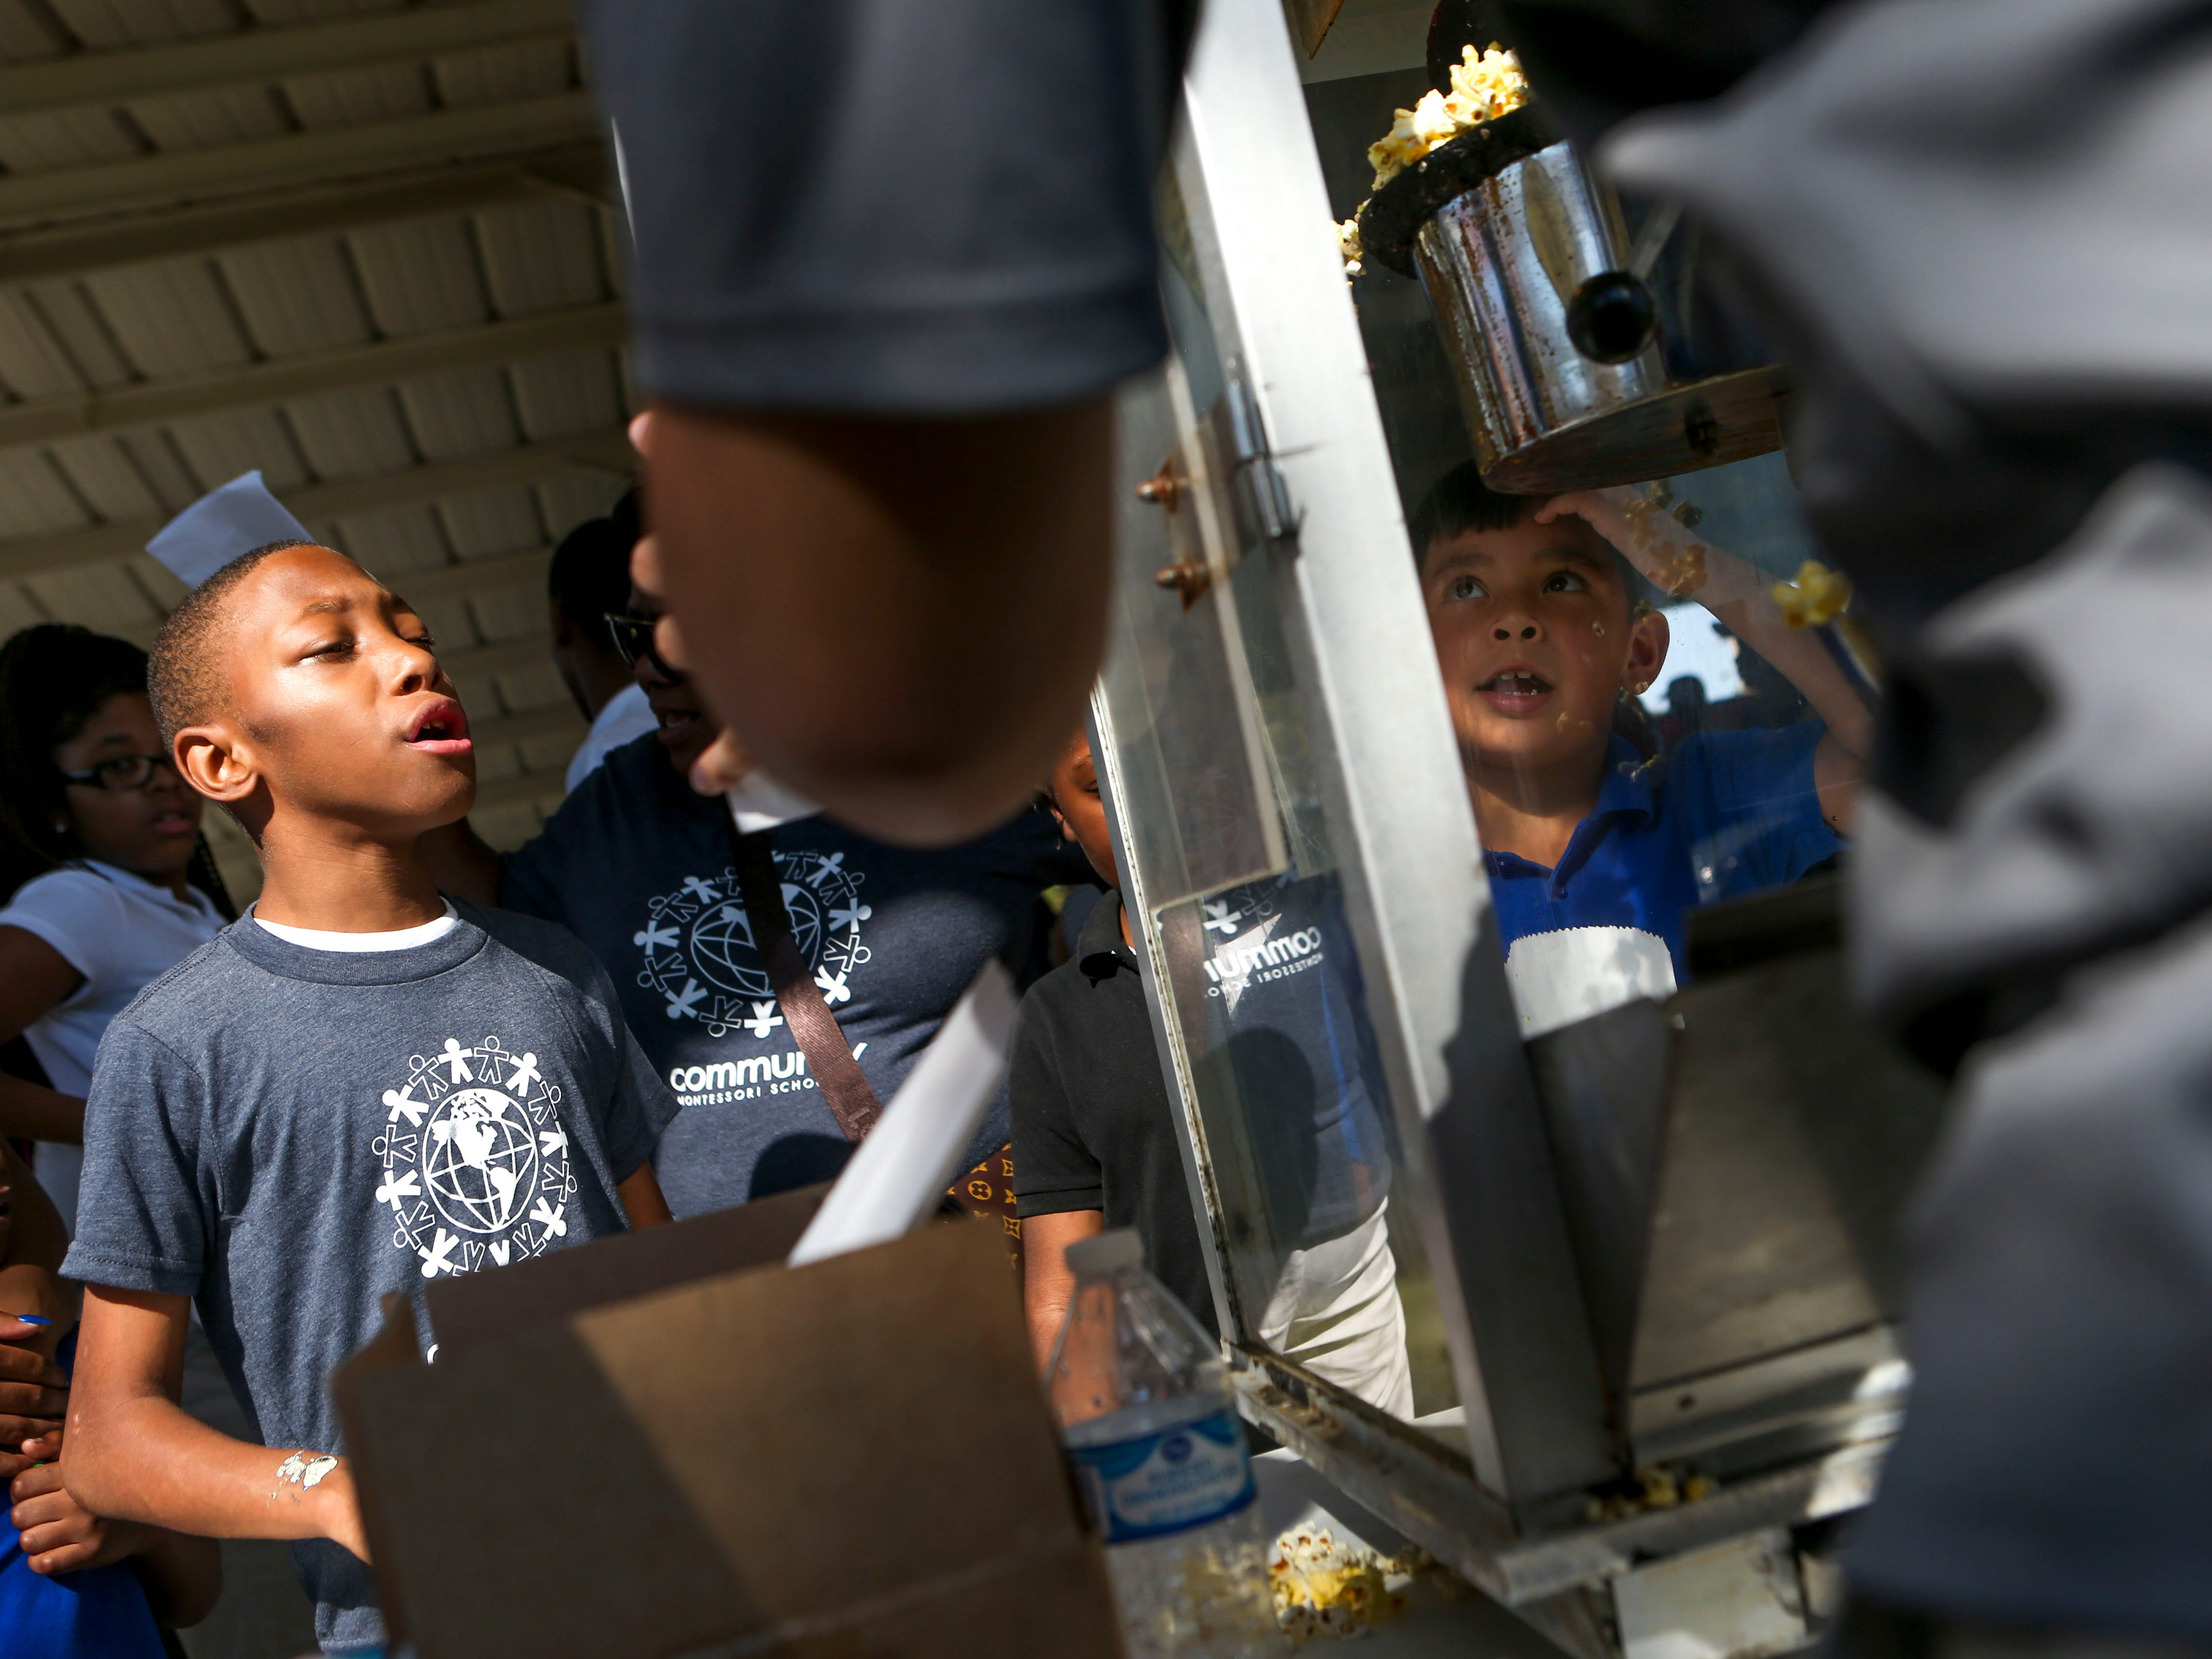 Kids wait in line for bags of popcorn at the Day of Champions celebration held at Jackson Fairgrounds Park in Jackson, Tenn., on Wednesday, Sept. 19, 2018.